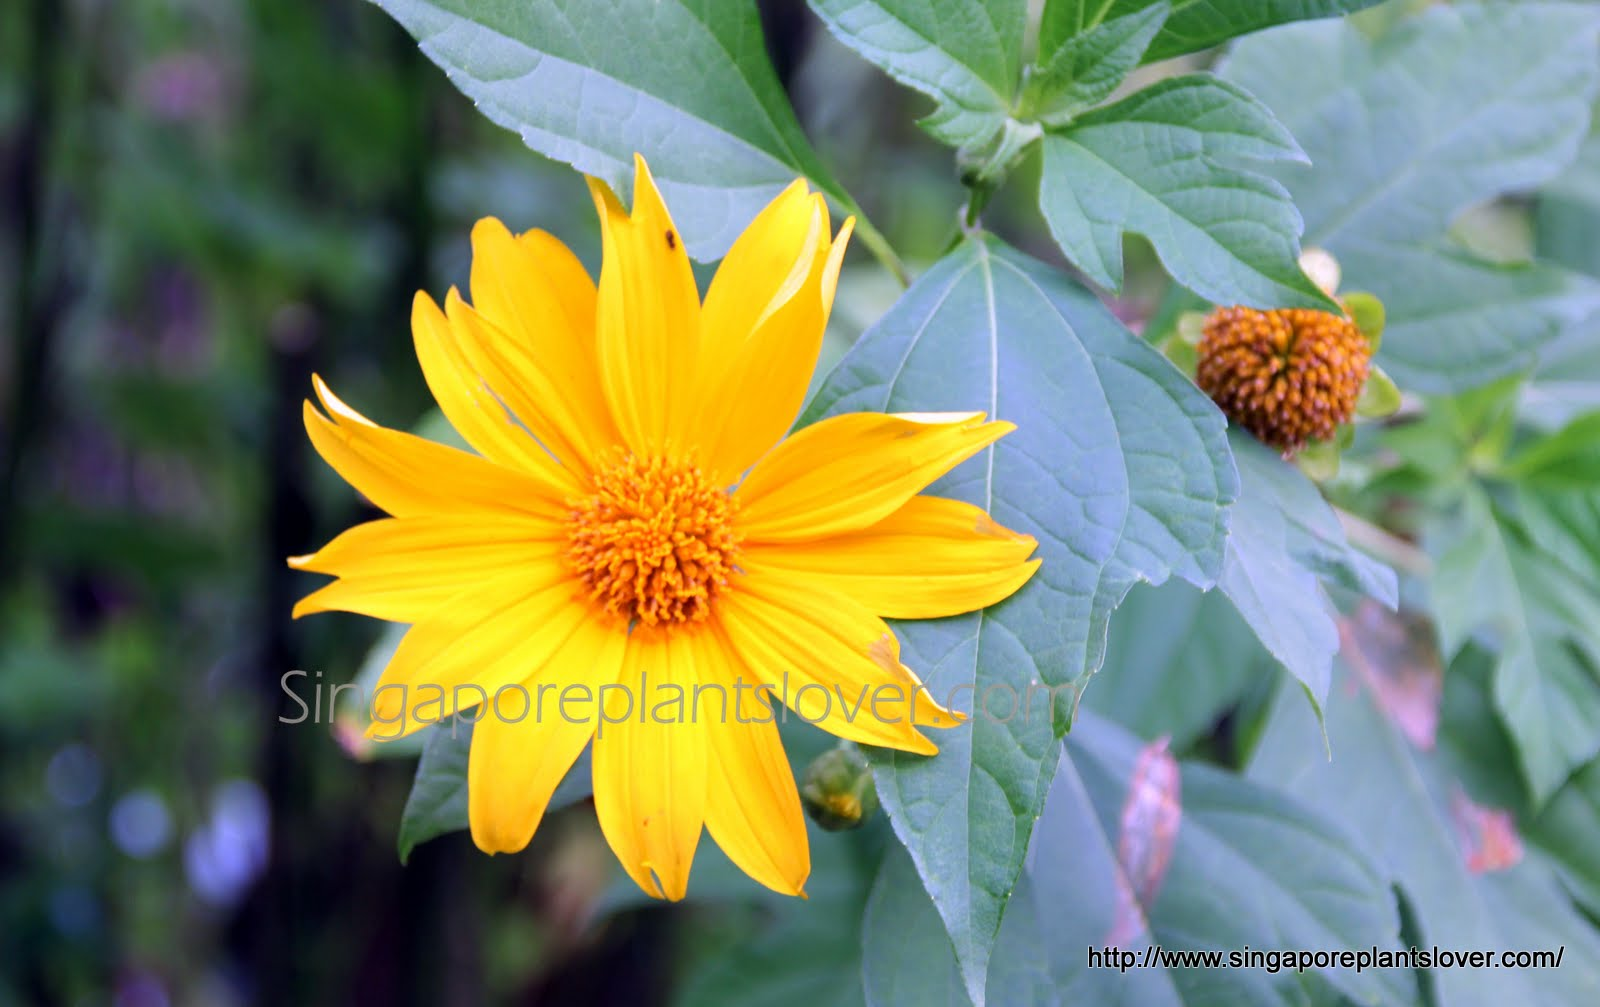 Singapore plants lover abc wednesday yellow flowers what is the name of this plants bright cheerful flowers look like mini sunflowers or daisy but the plant is growing like shrub about 2 meter tall izmirmasajfo